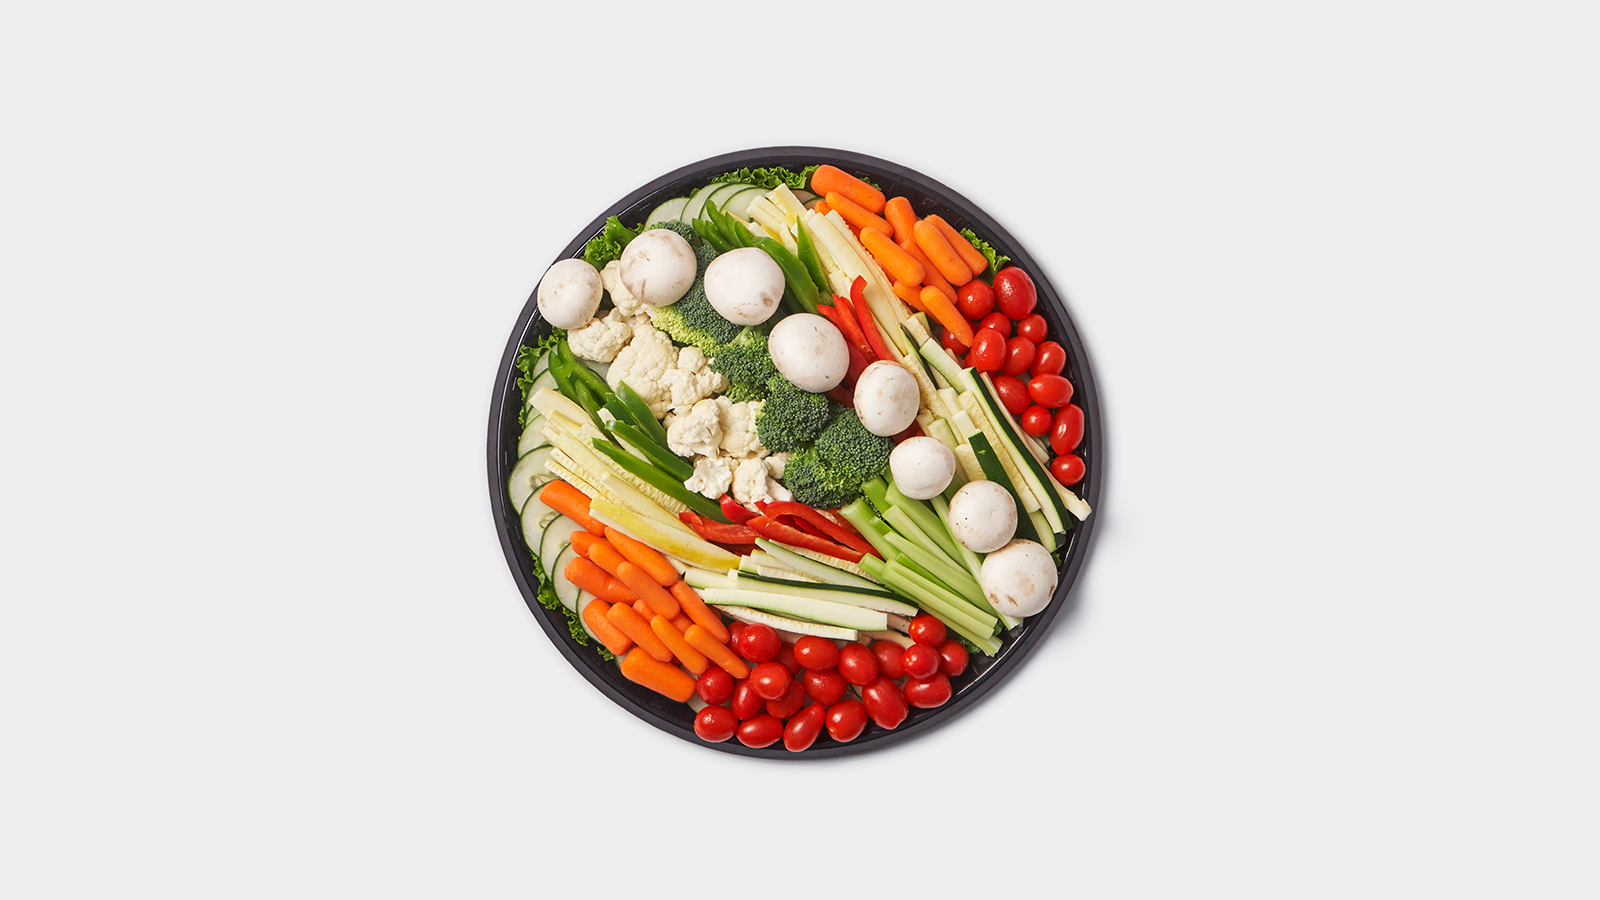 Crudite with Creamy Dip